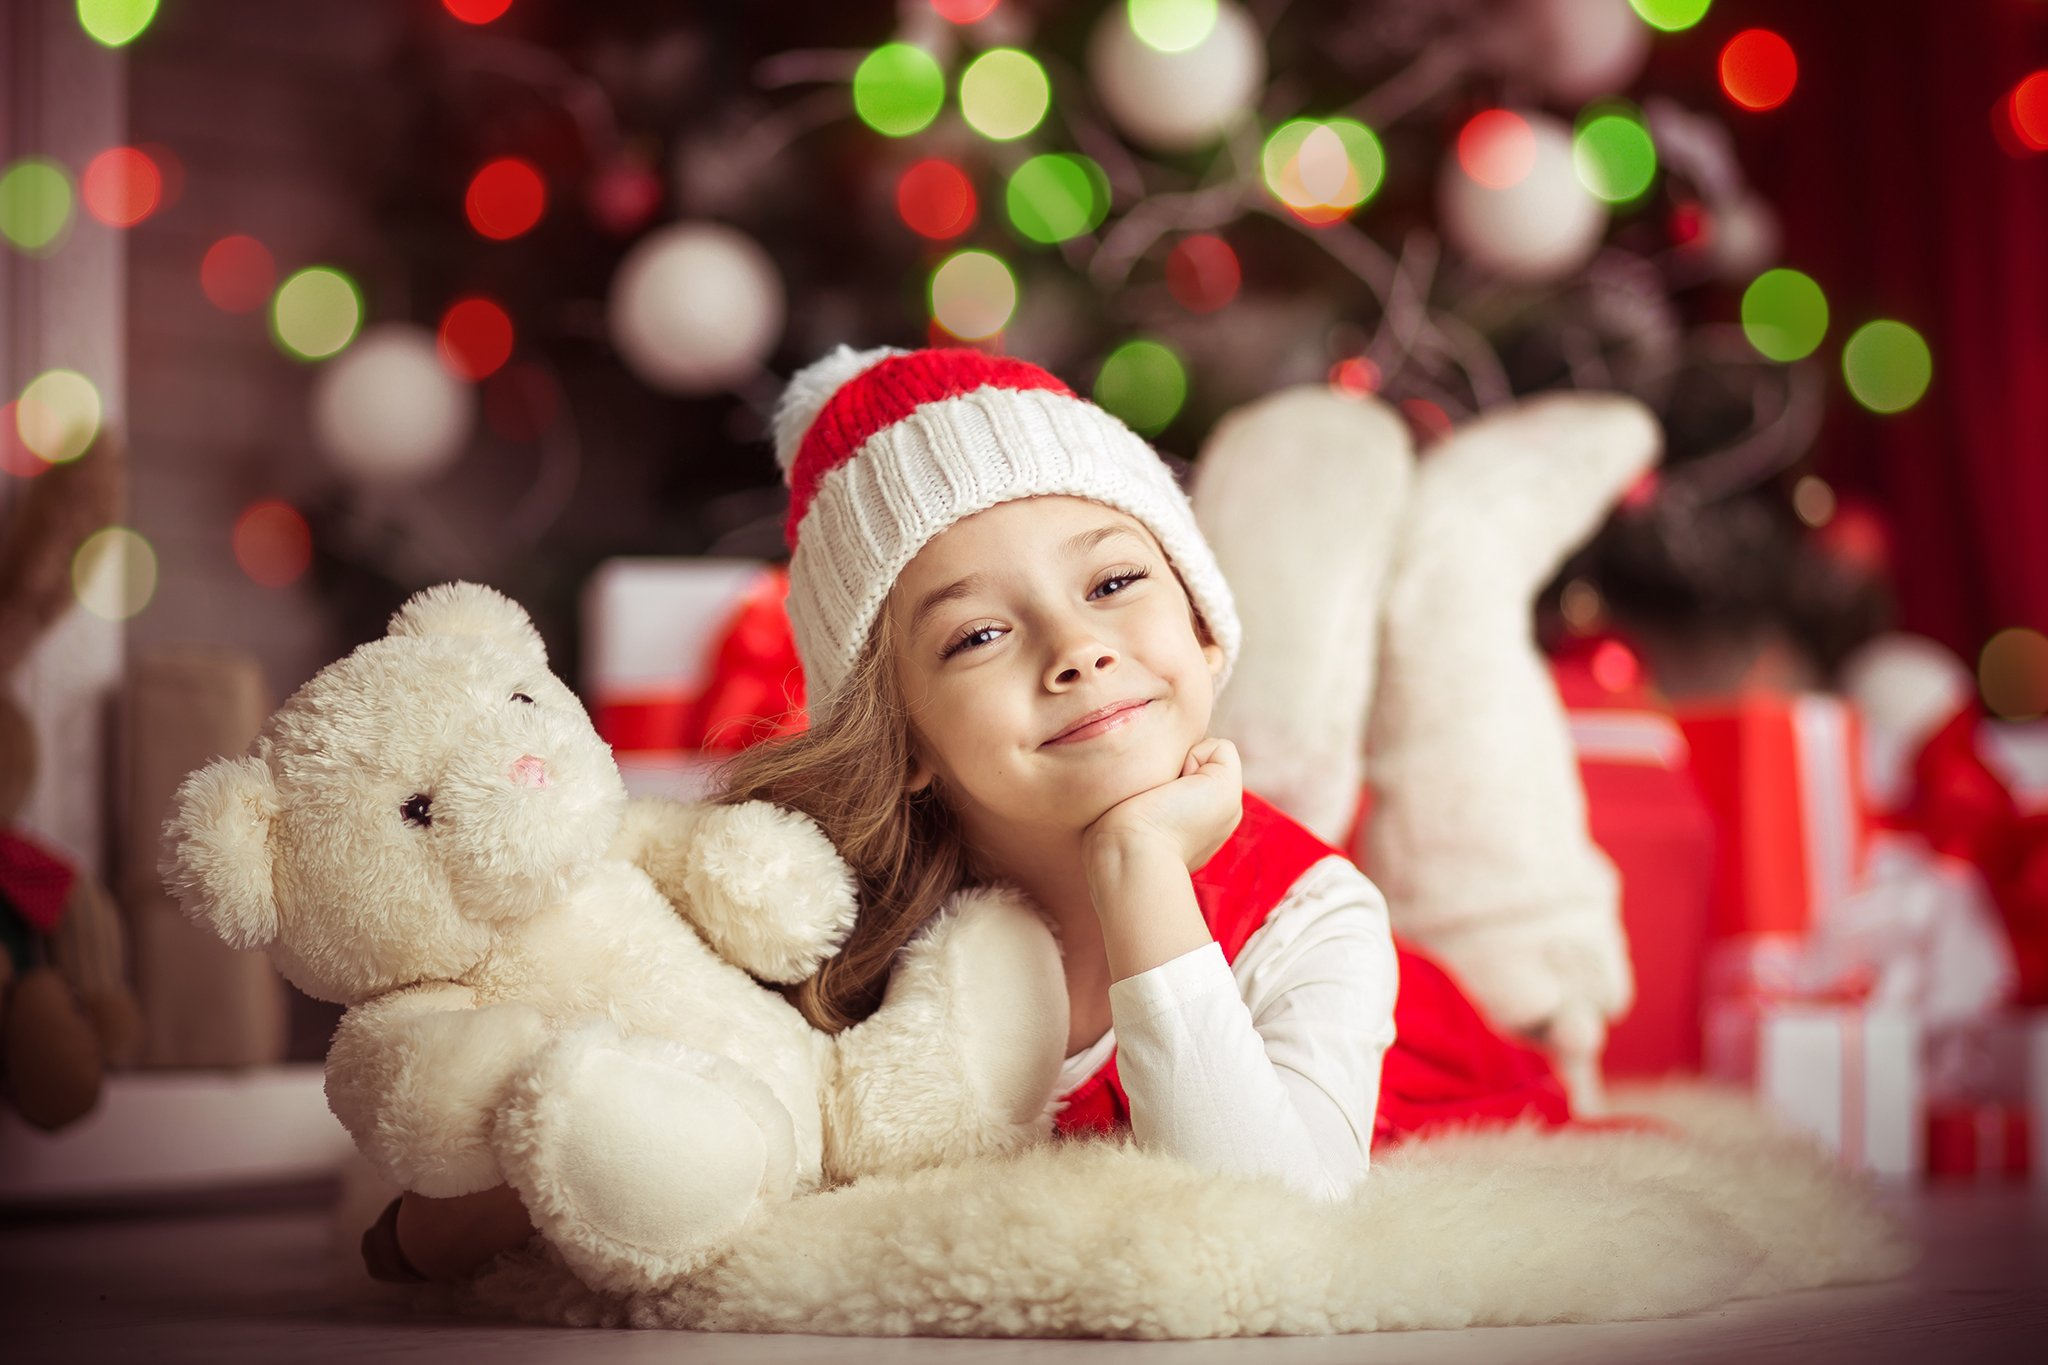 Lovely girl on the floor near the Christmas tree with a bear, studio shot, toning in vintage style.